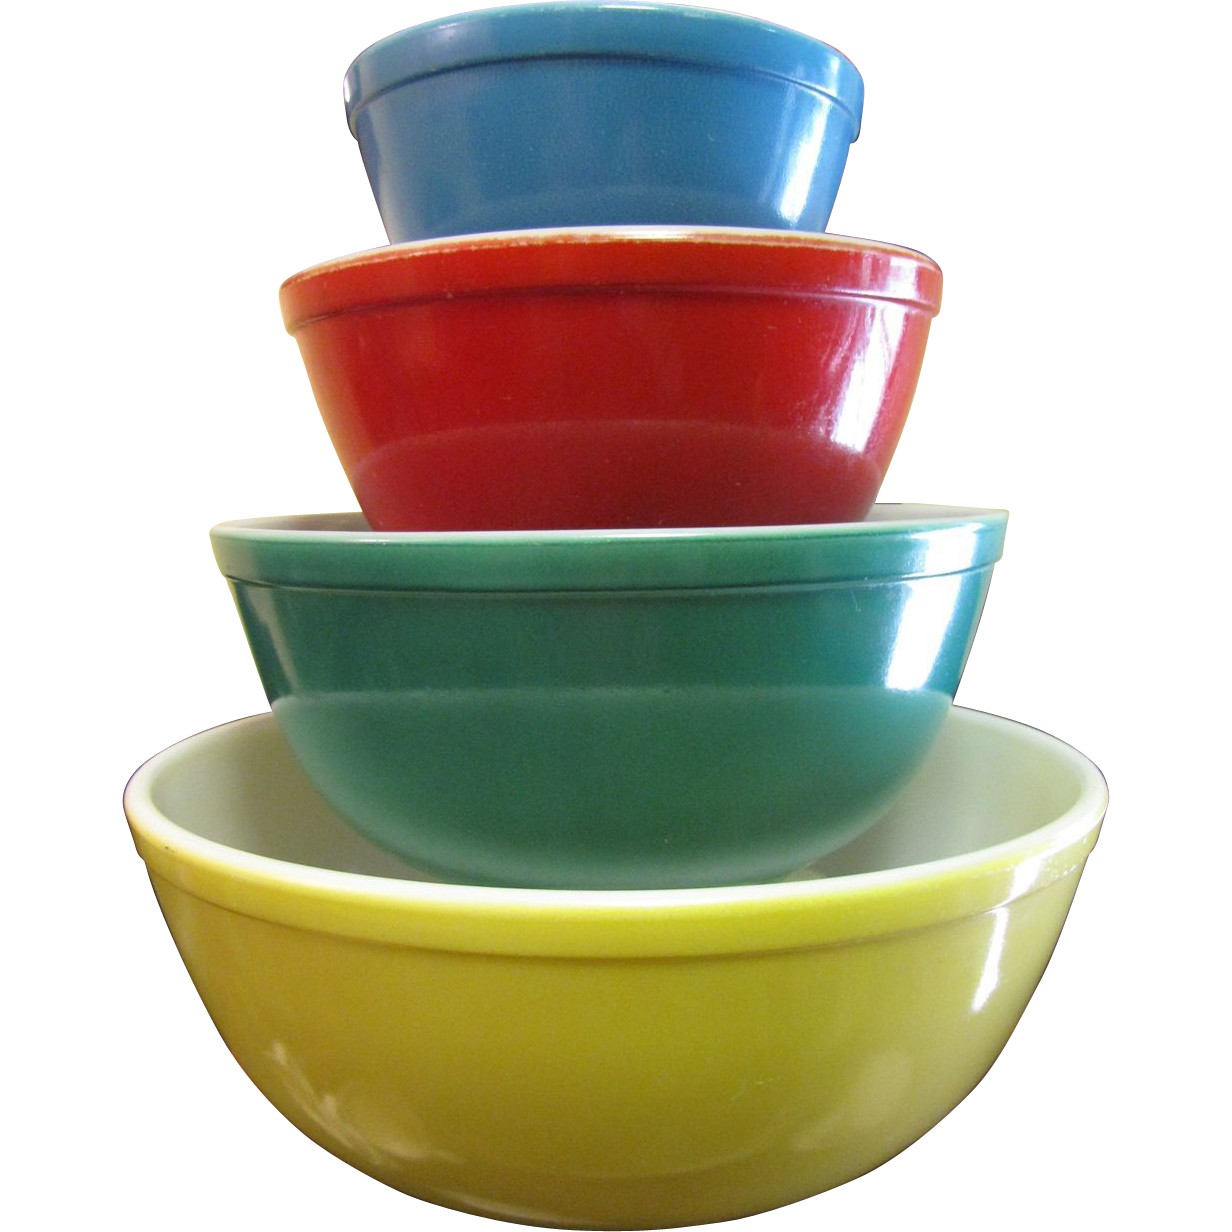 Set of Vintage Pyrex Primary Color Mixing Bowls from